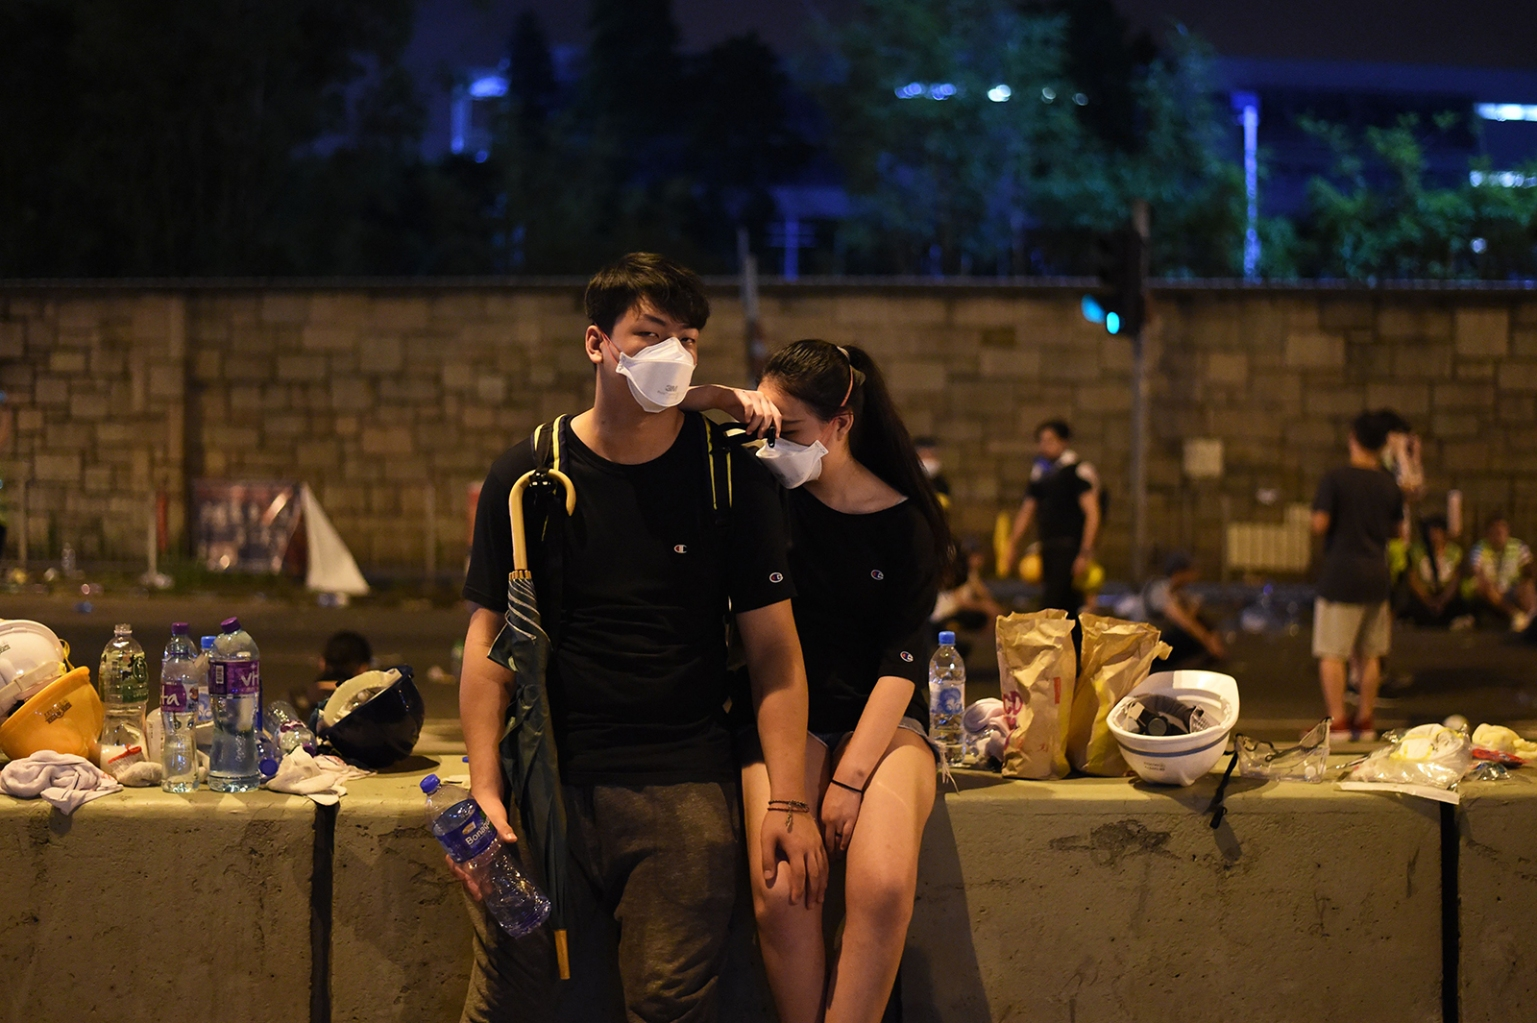 Demonstrators rest after a protest against a in Hong Kong on June 12. HECTOR RETAMAL/AFP/Getty Images